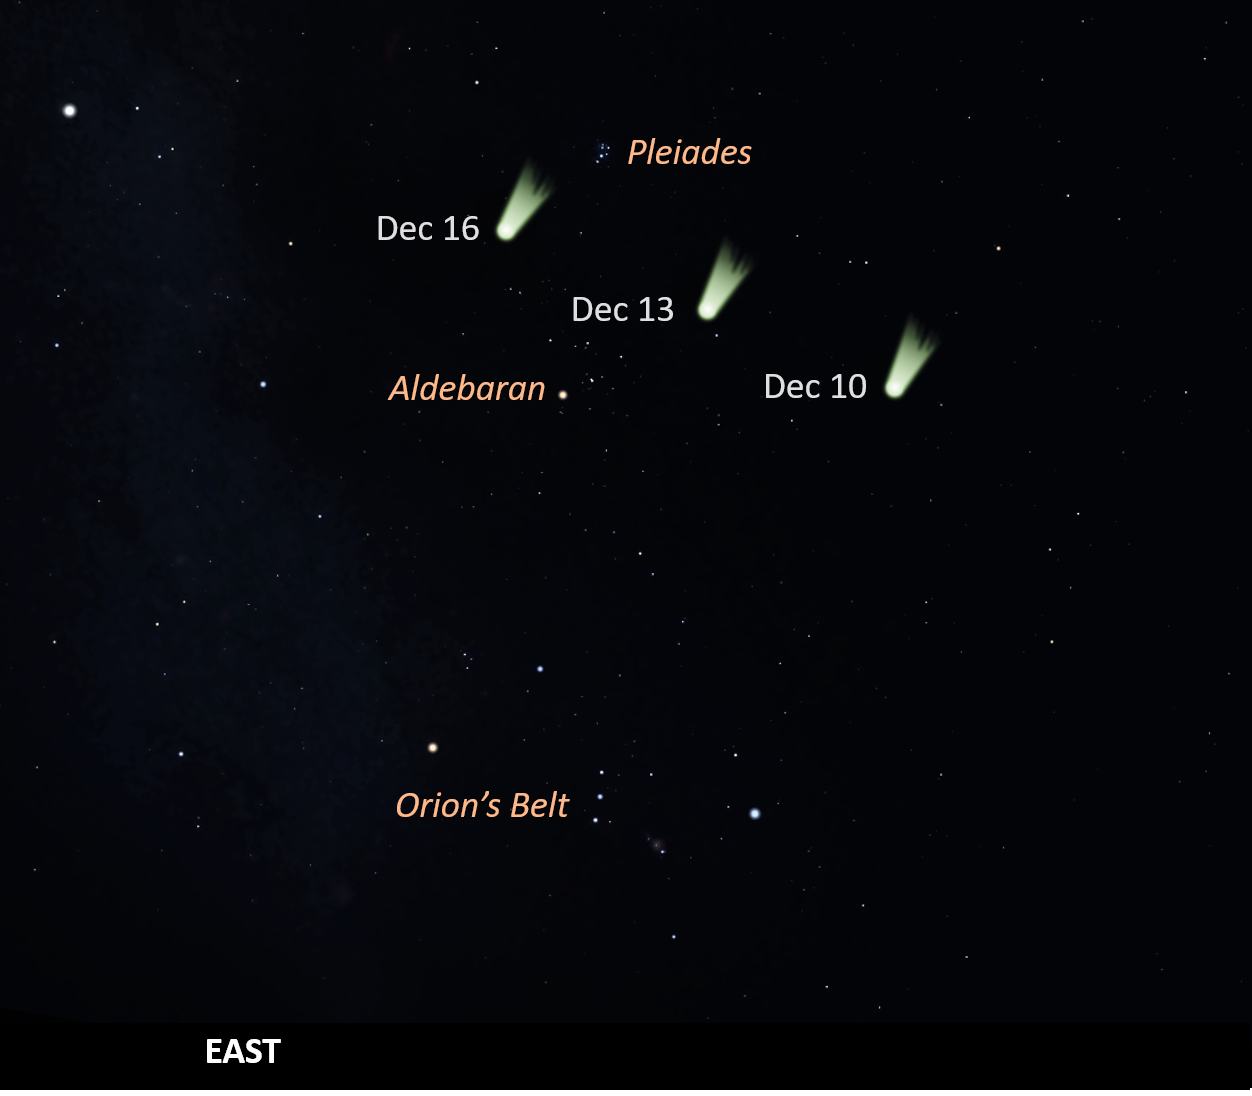 Comet Wirtanen's path across the December sky